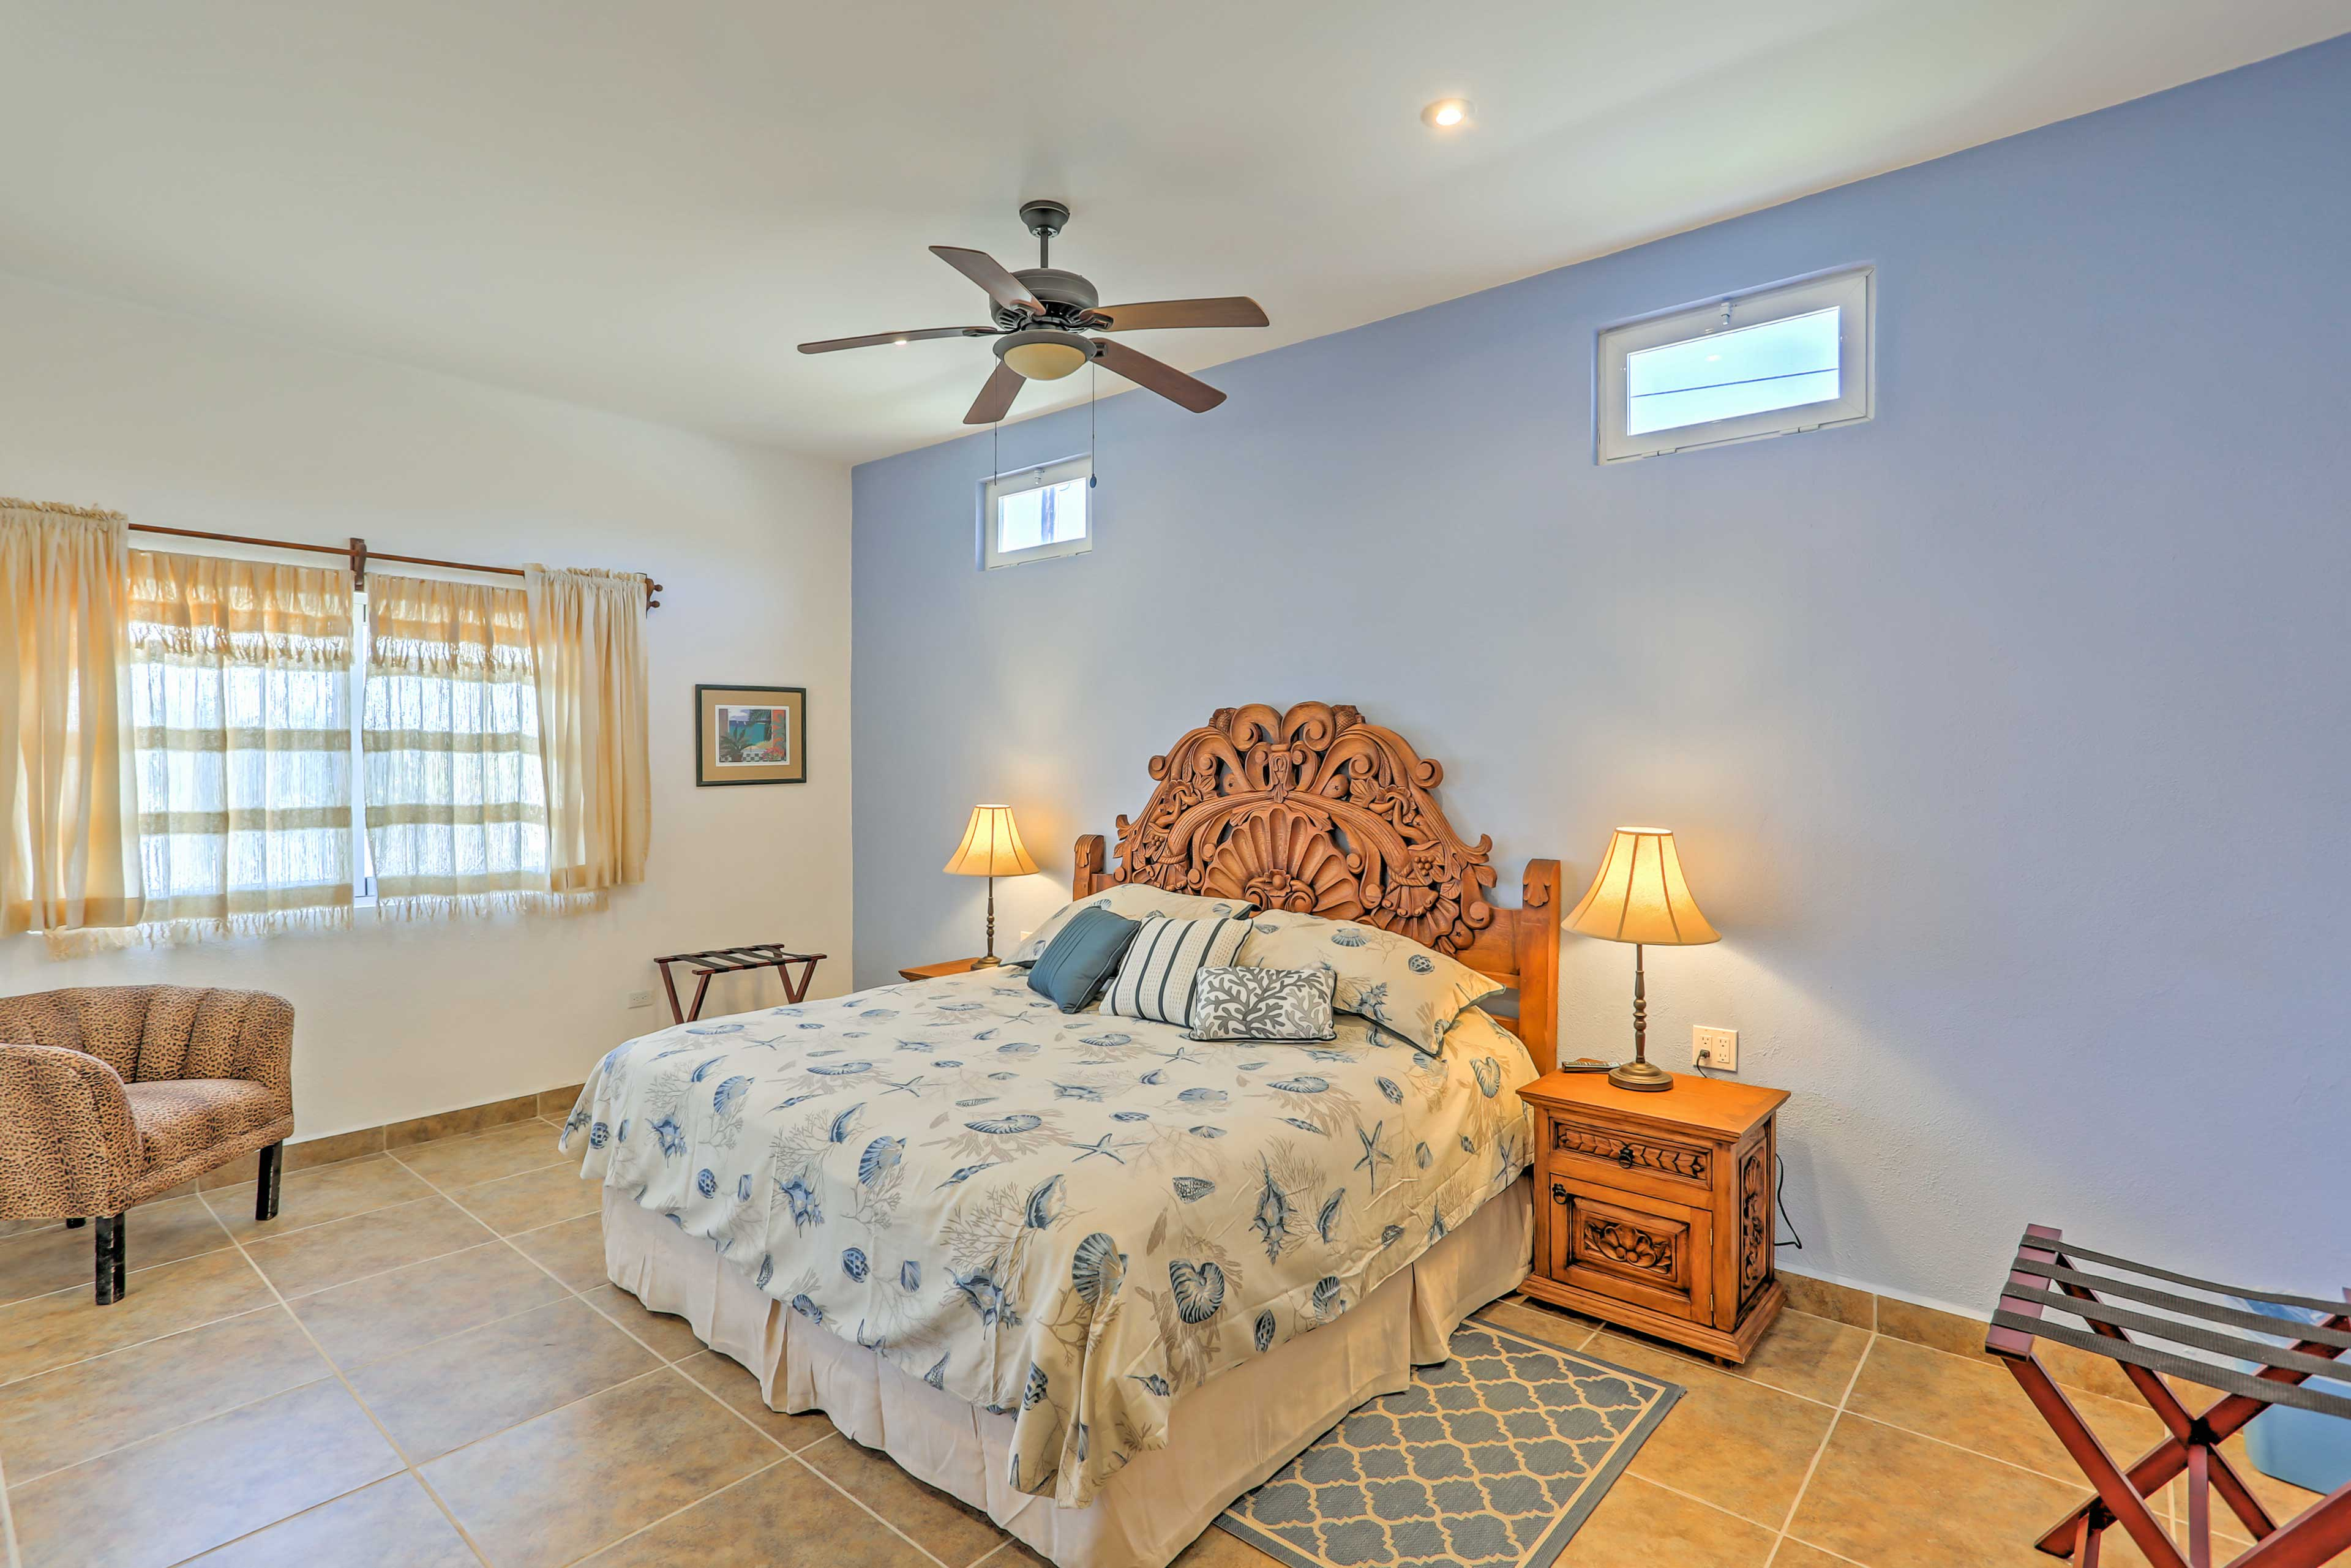 Let the ceiling fan usher you to sleep!